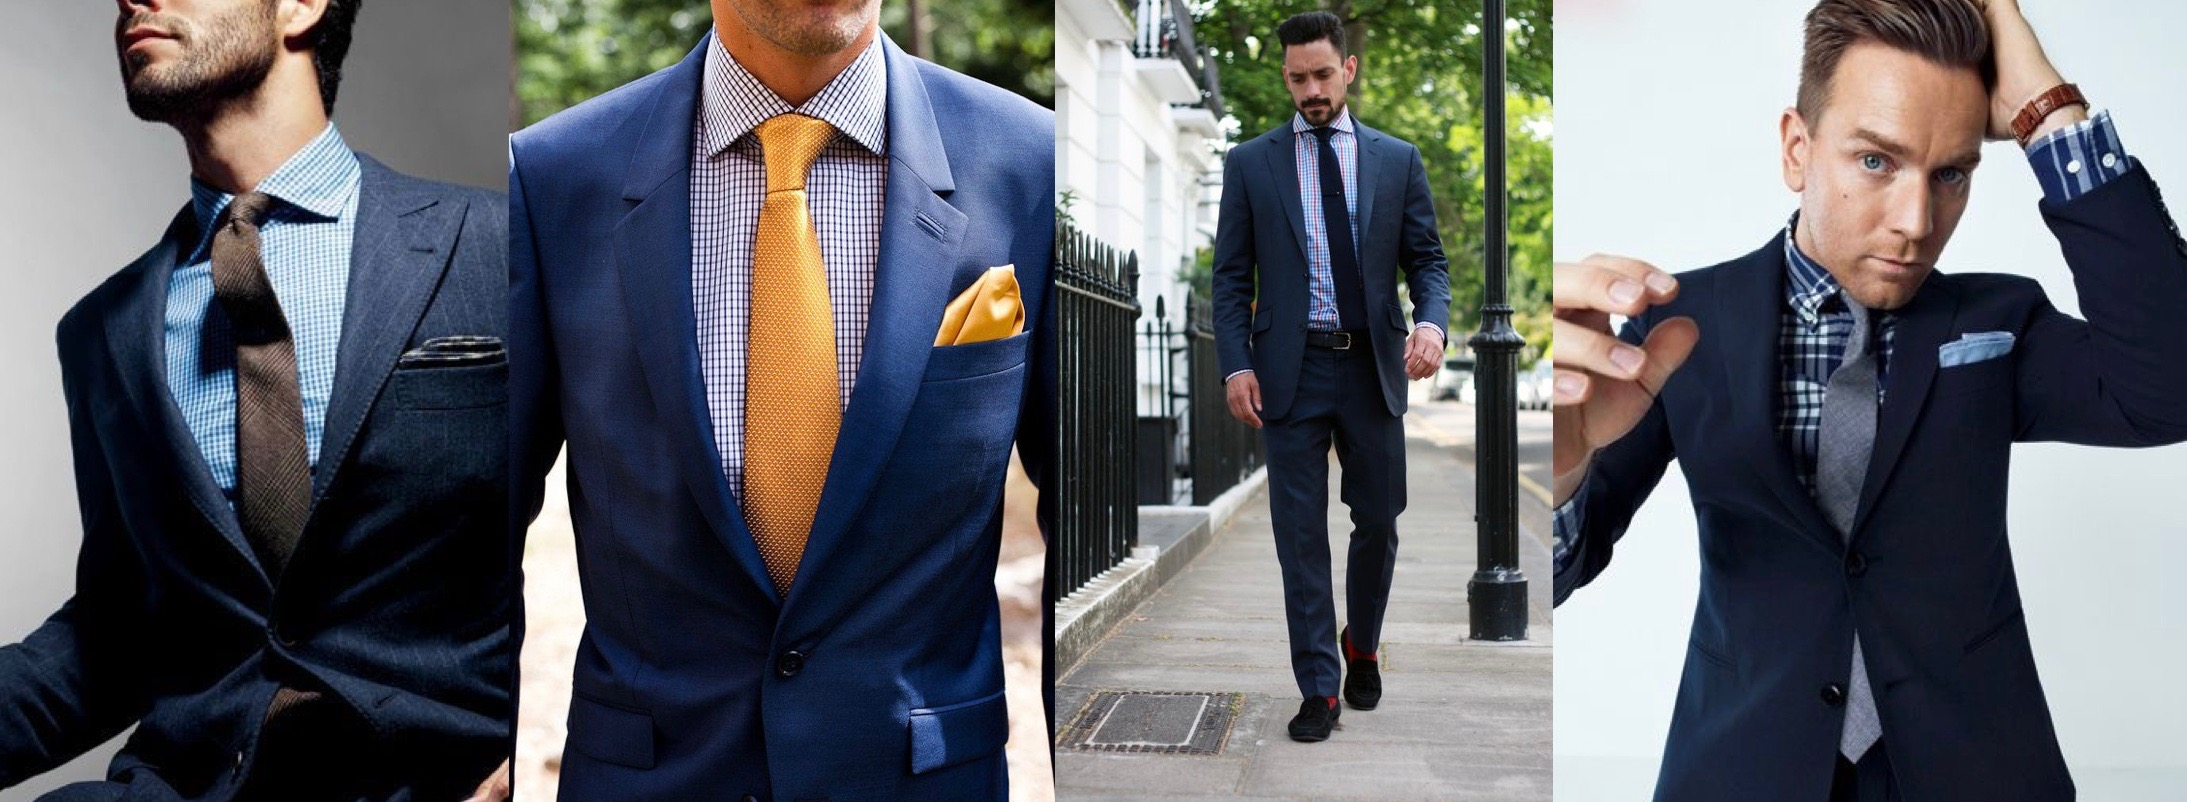 Navy Suit Combinations.jpg